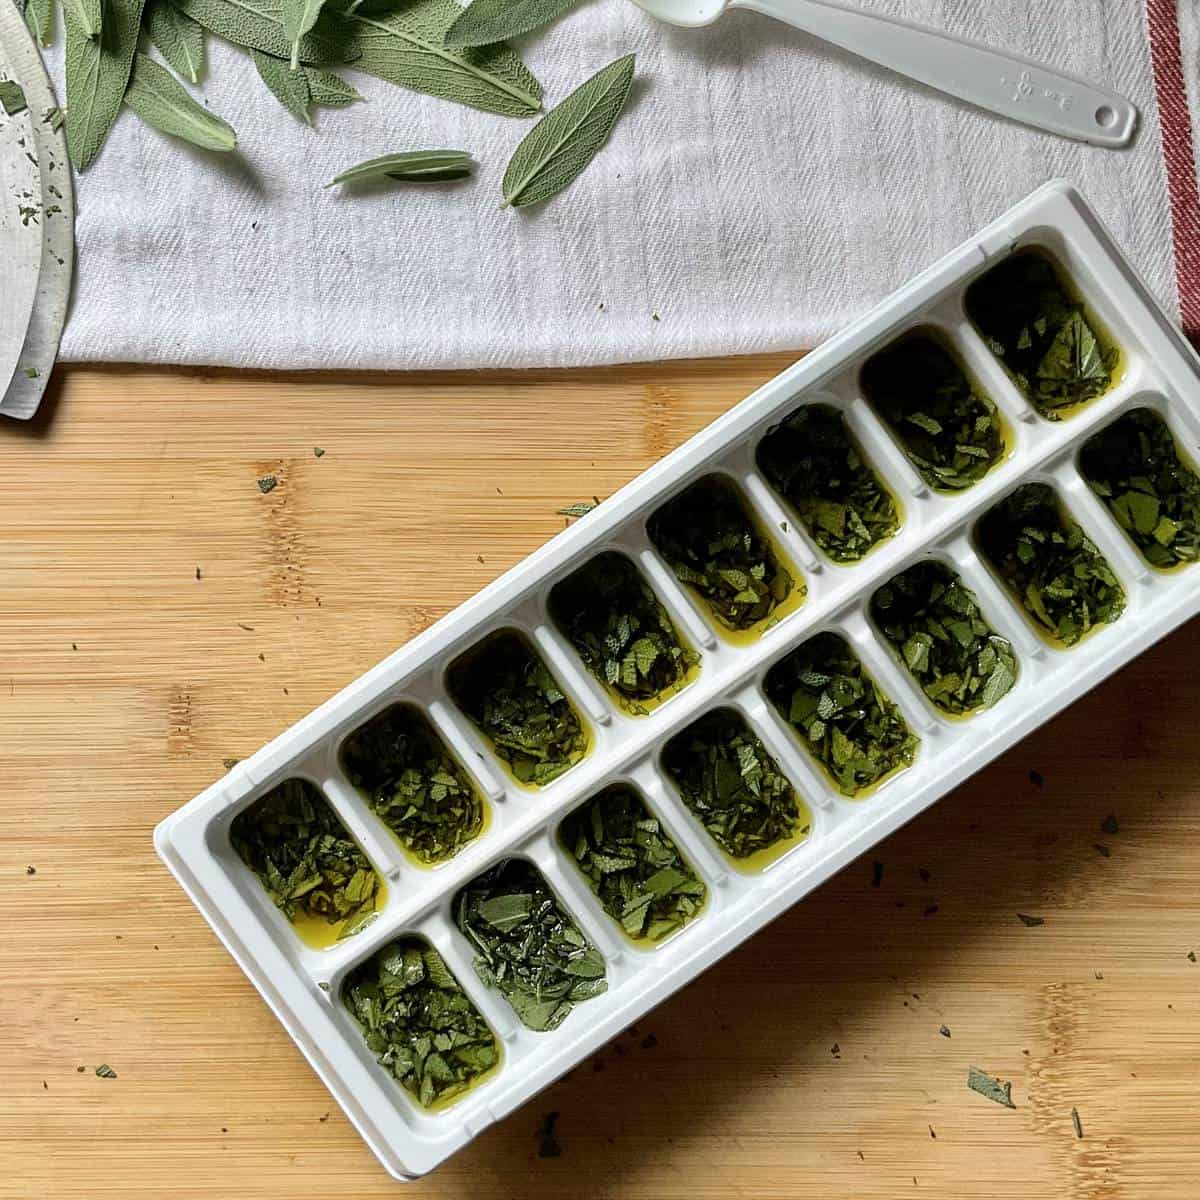 An ice cube tray filled with fresh herbs.